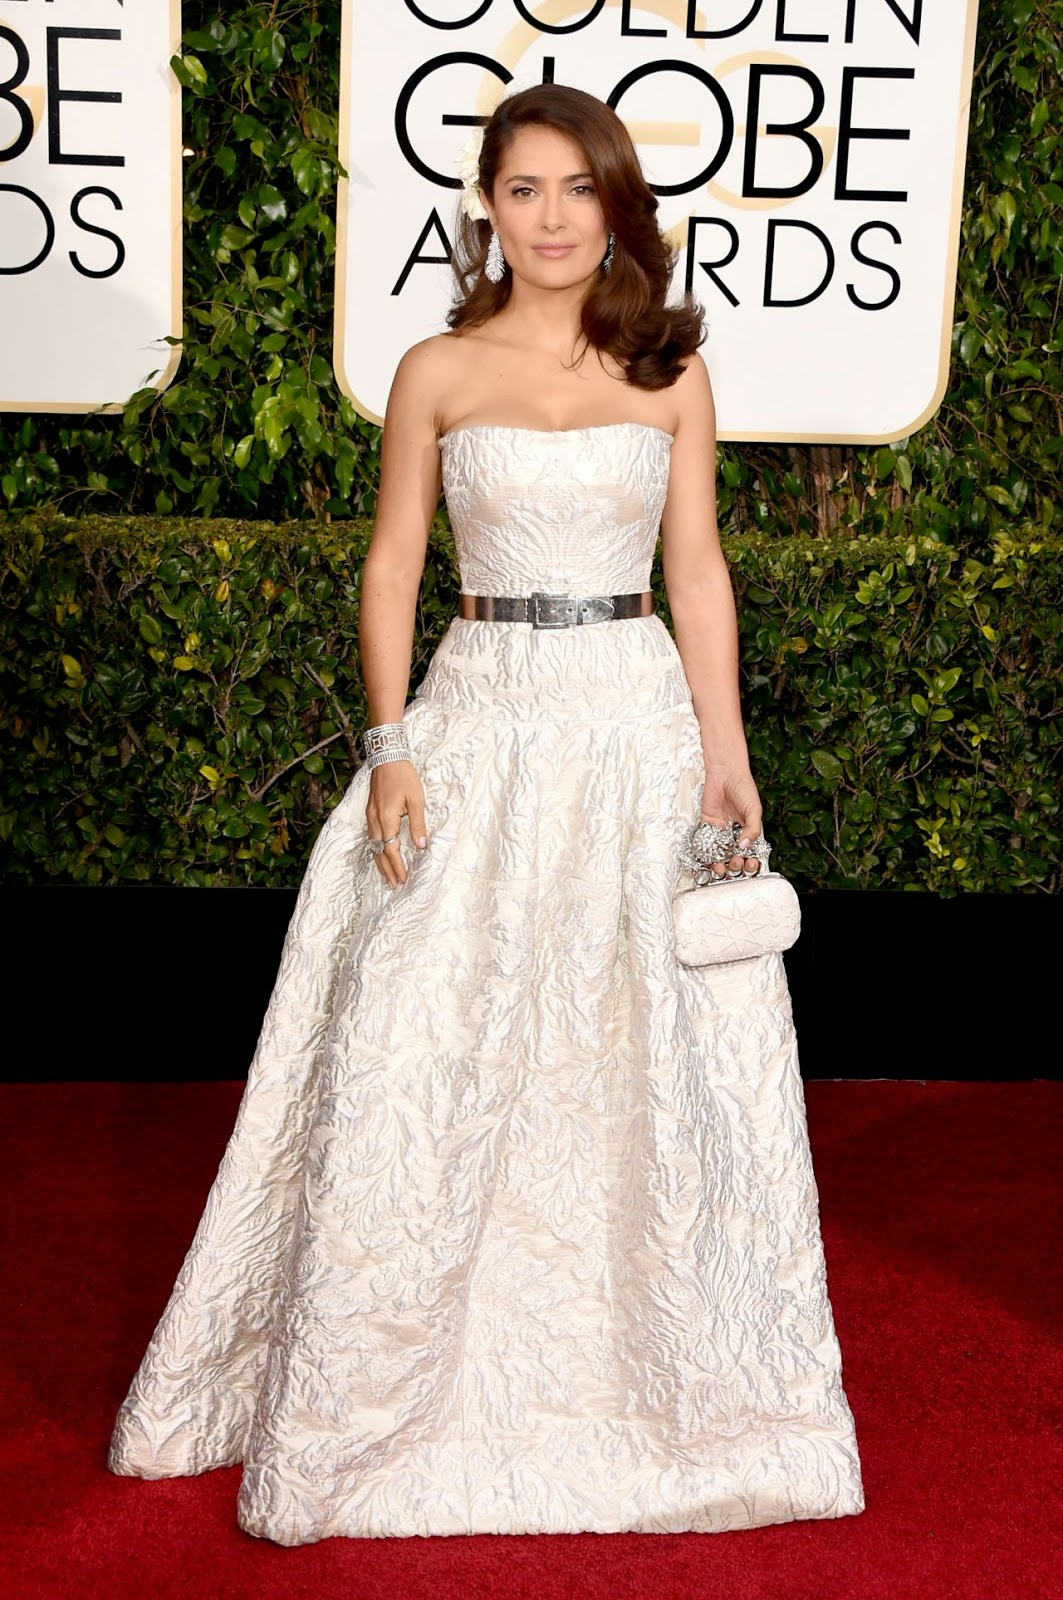 Salma Hayek dazzles in a white brocade dress at the 2015 Golden Globe Awards